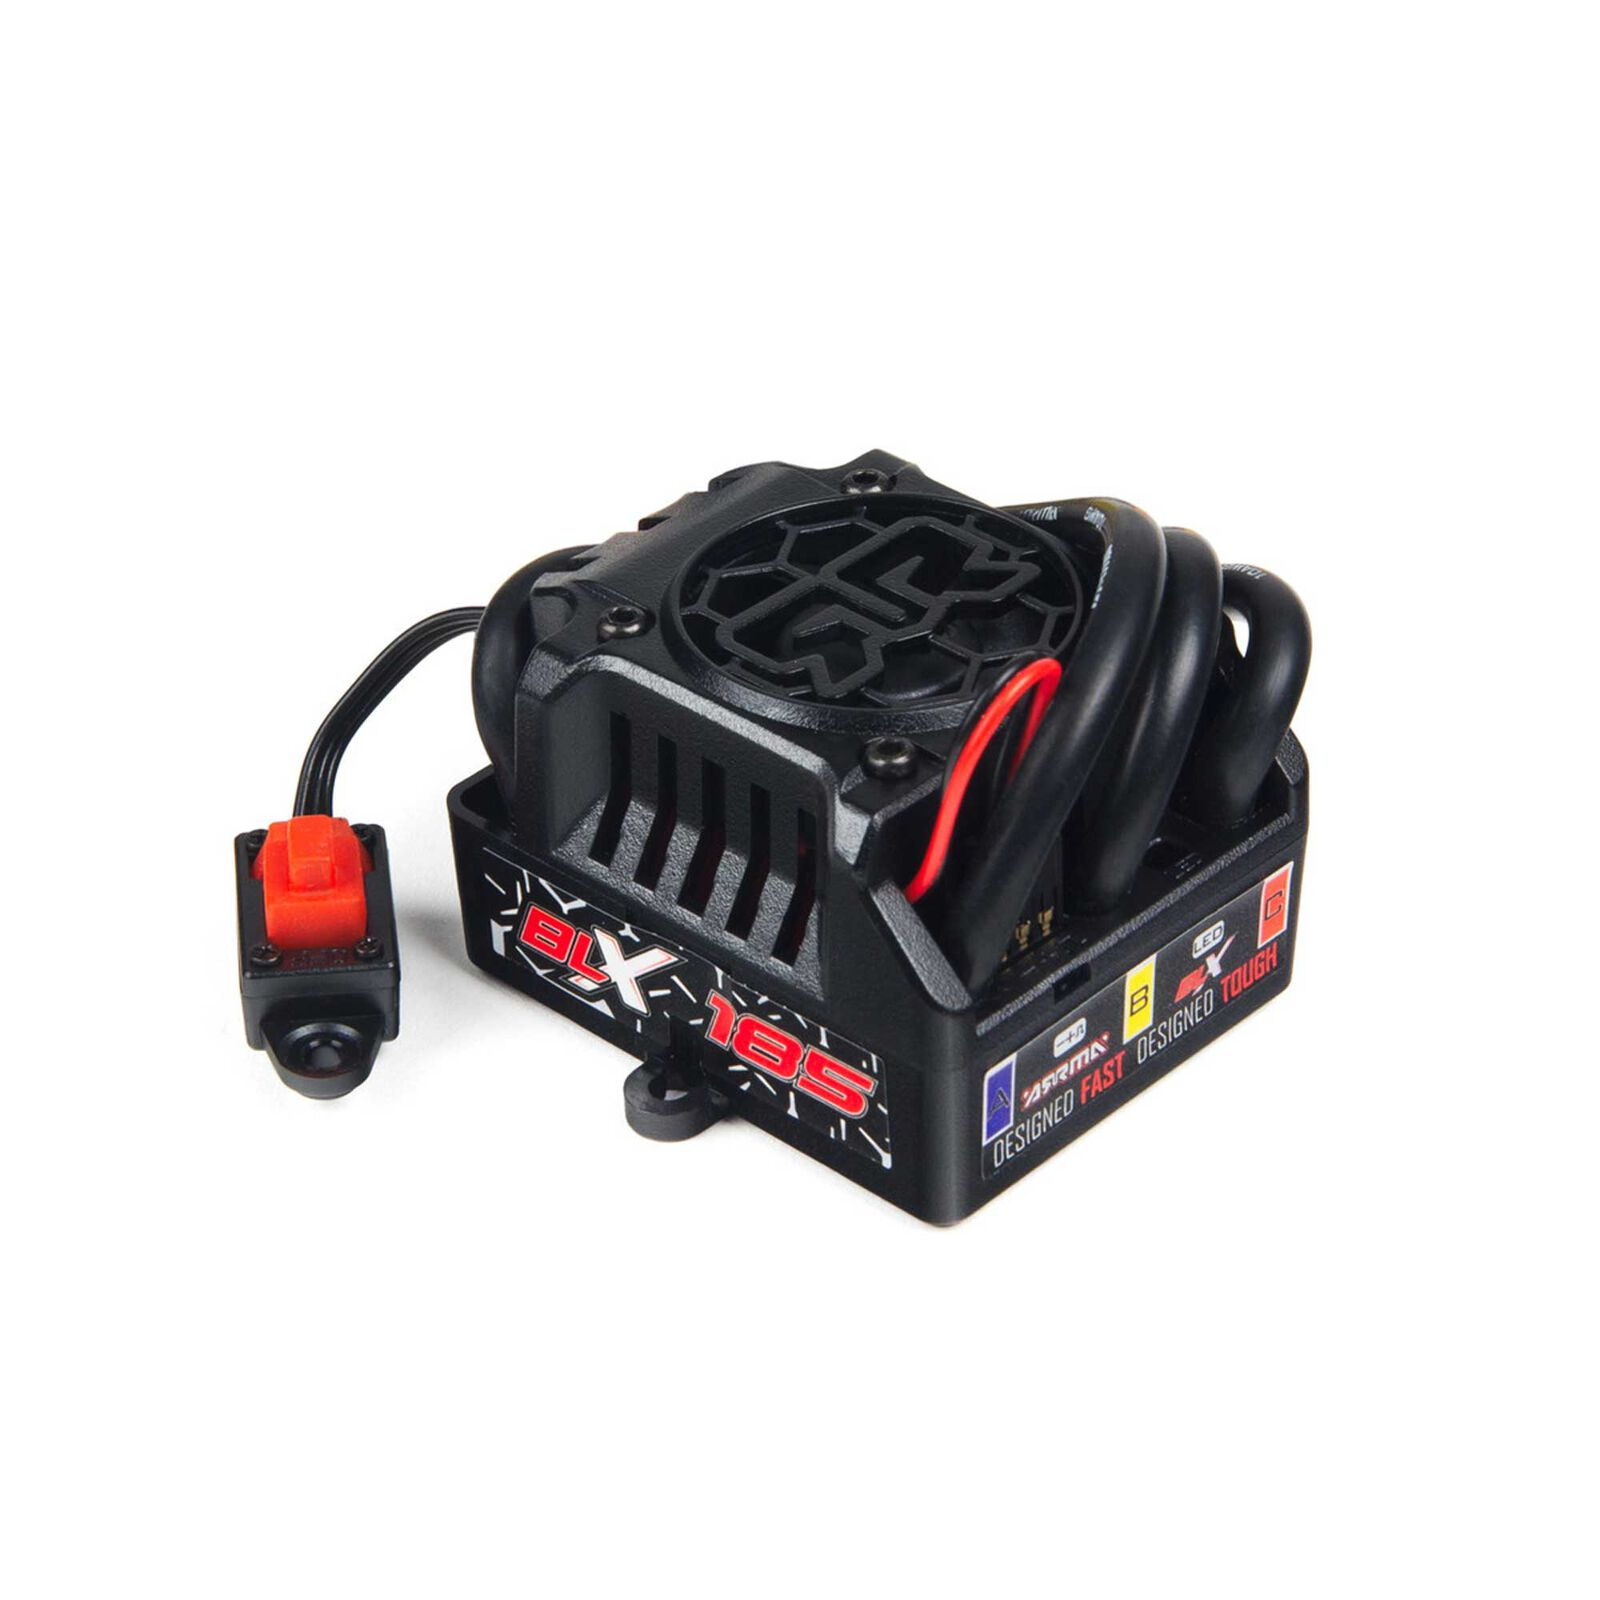 BLX185 Brushless 6S ESC with IC5